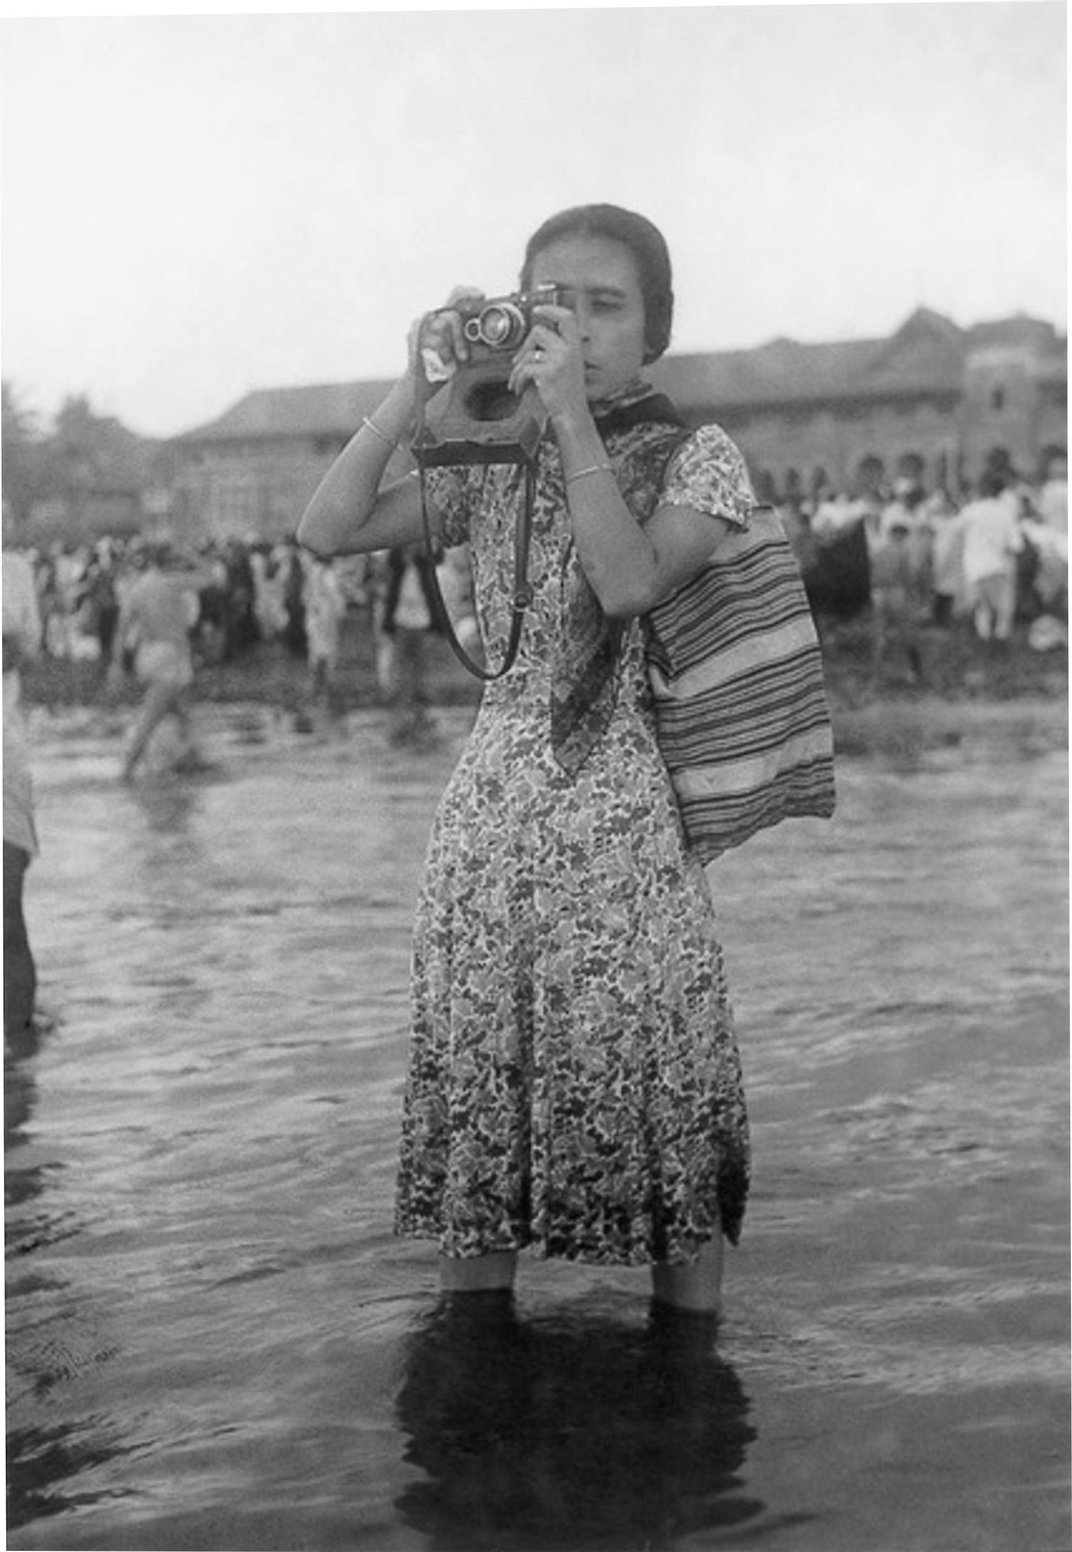 Meet the Woman Photographers Who Cataloged the 20th Century